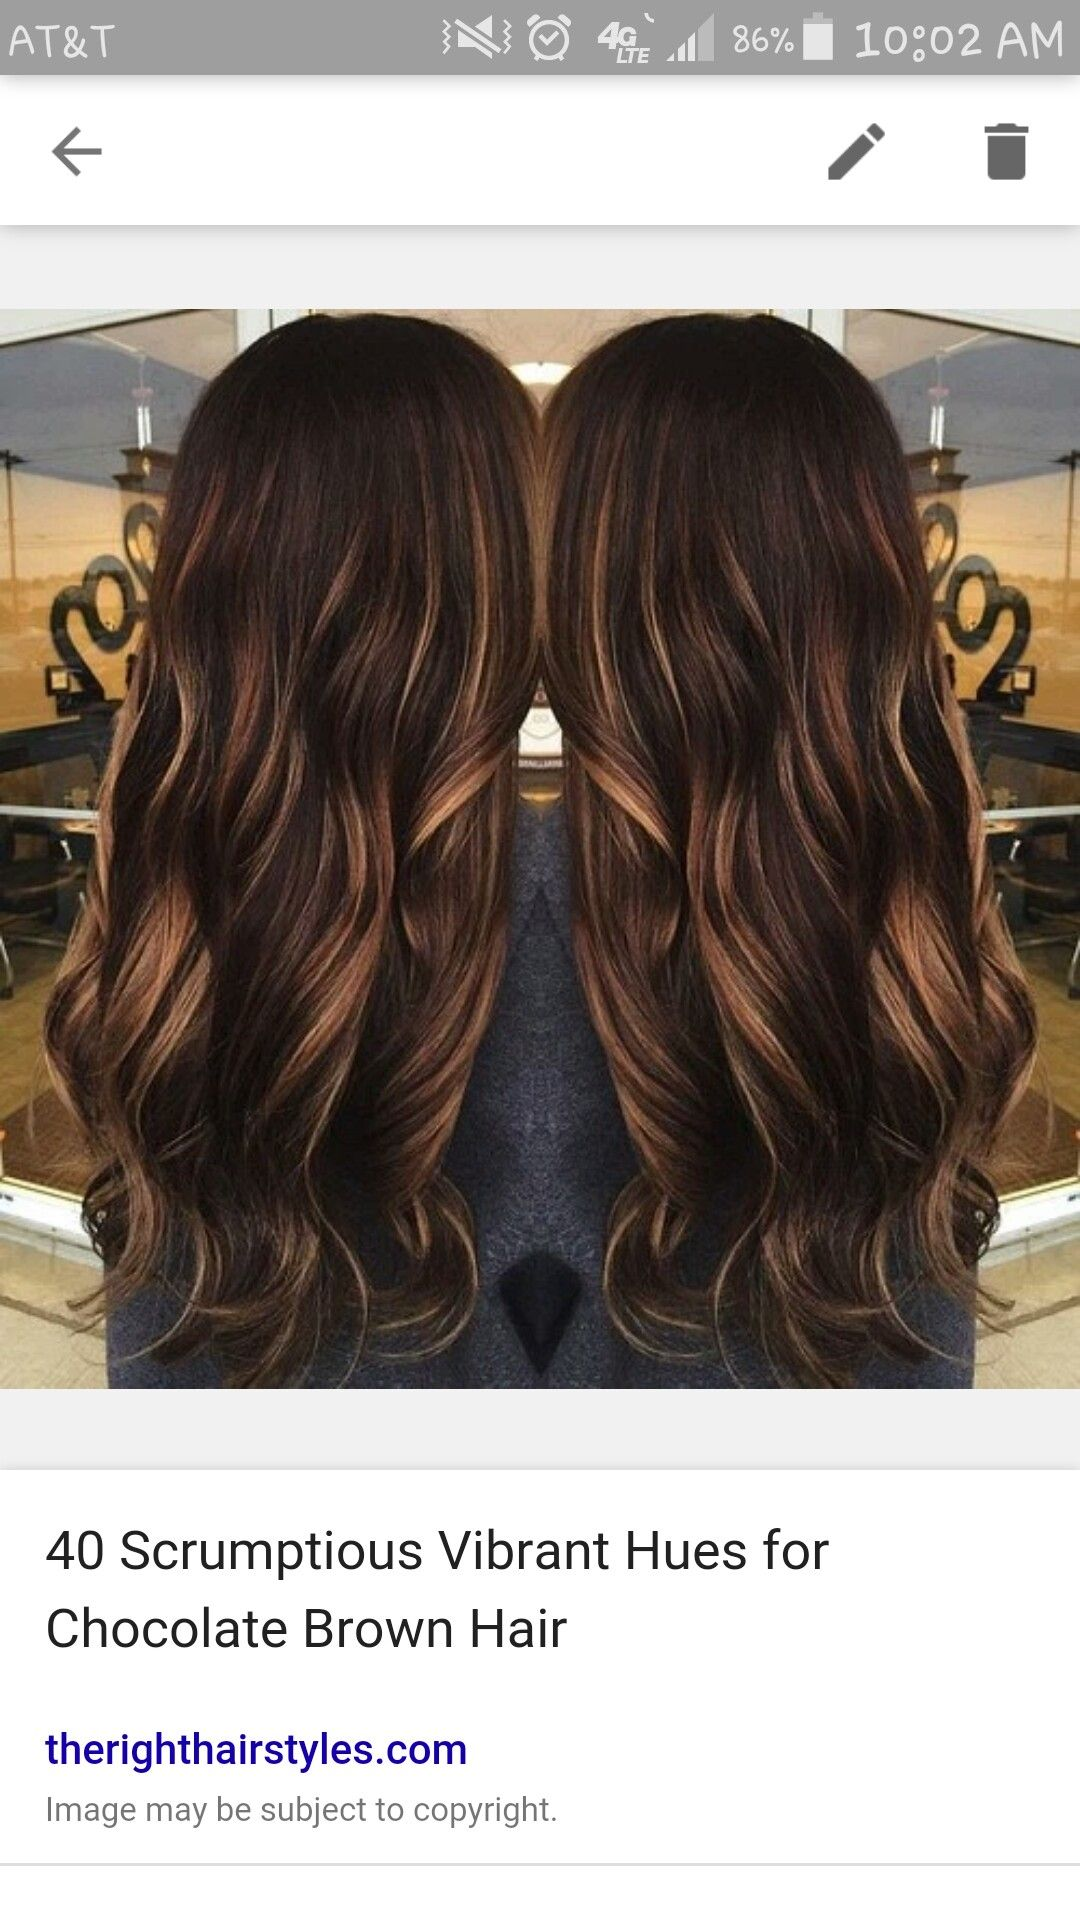 Chocolate caramel (With images) Mocha hair,